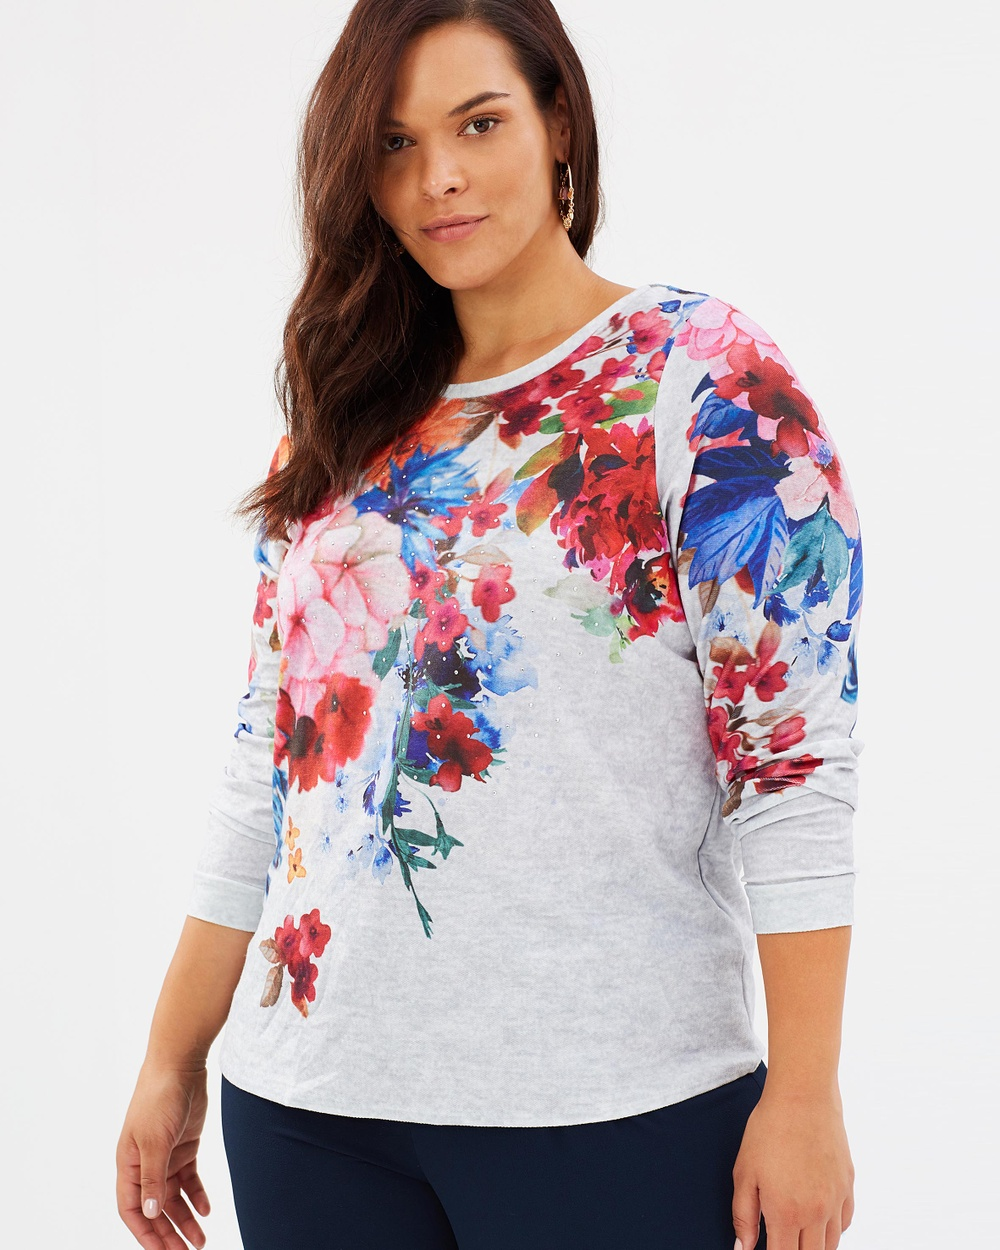 EVANS Floral Neckline Sweat Top Tops Grey Floral Neckline Sweat Top